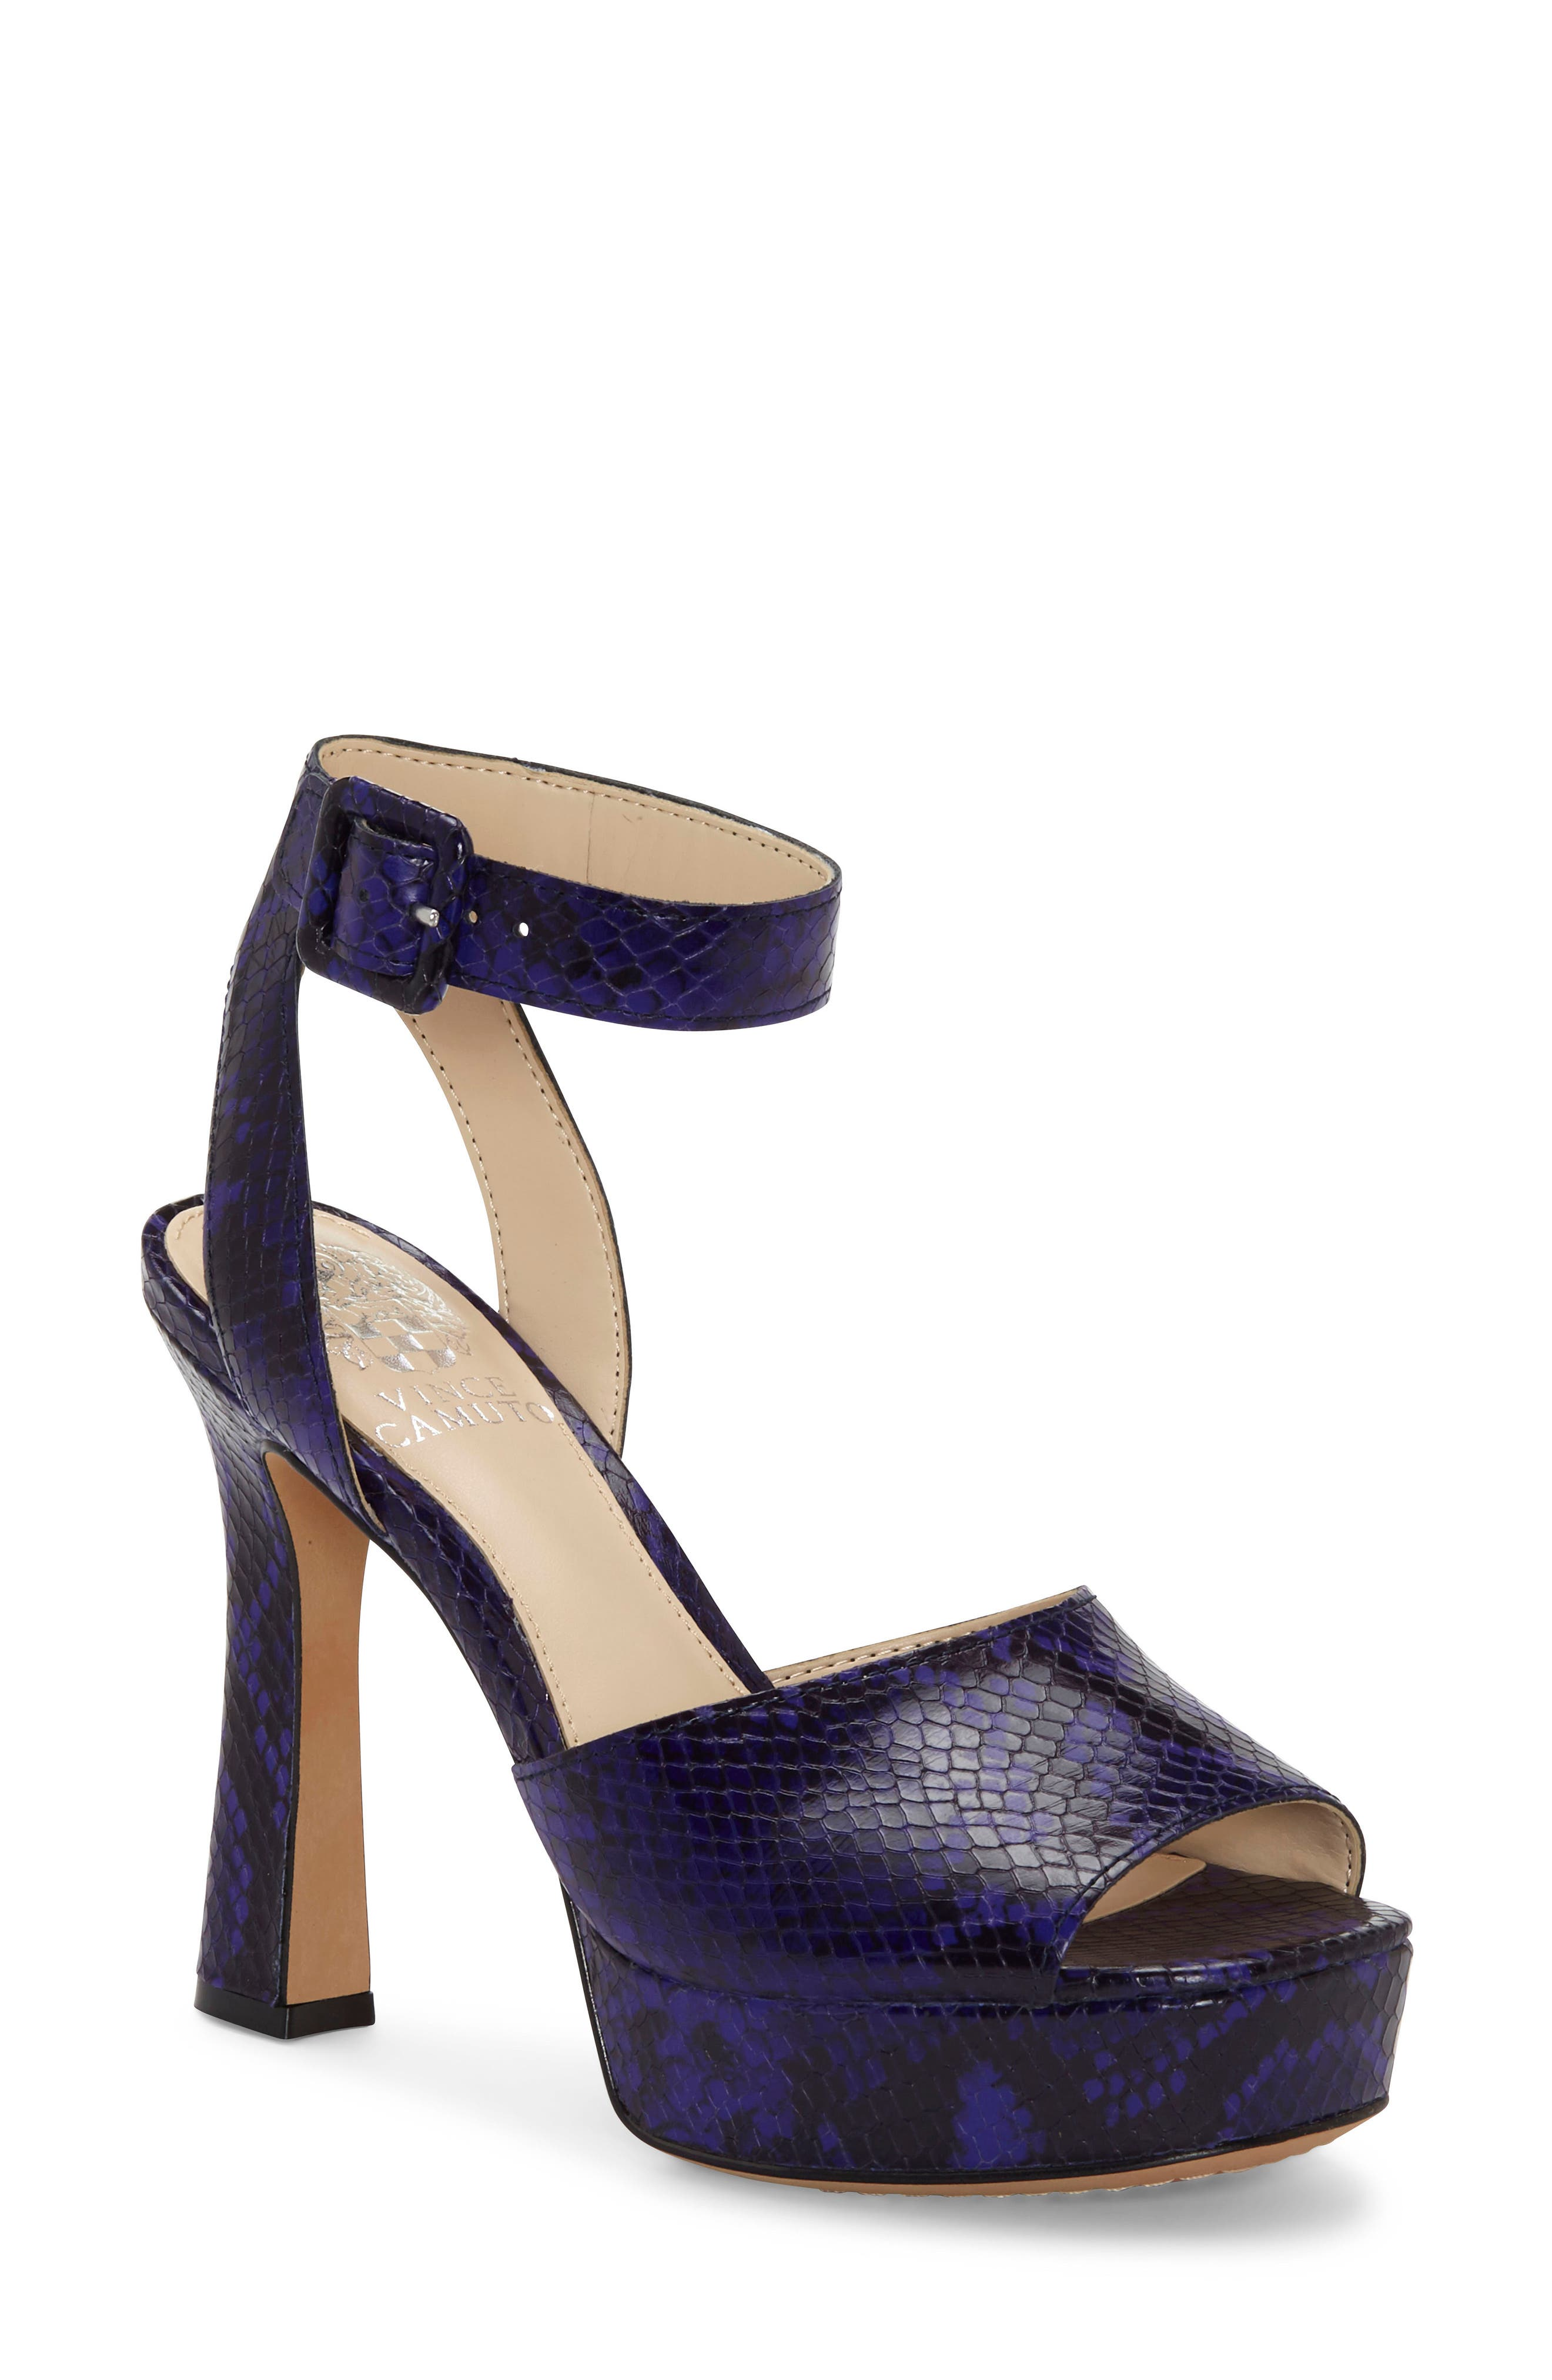 Rock \\\'70s style with this platform sandal designed with an ankle strap and curvy tall heel. Style Name: Vince Camuto Kortinta Platform Sandal (Women). Style Number: 5955460. Available in stores.